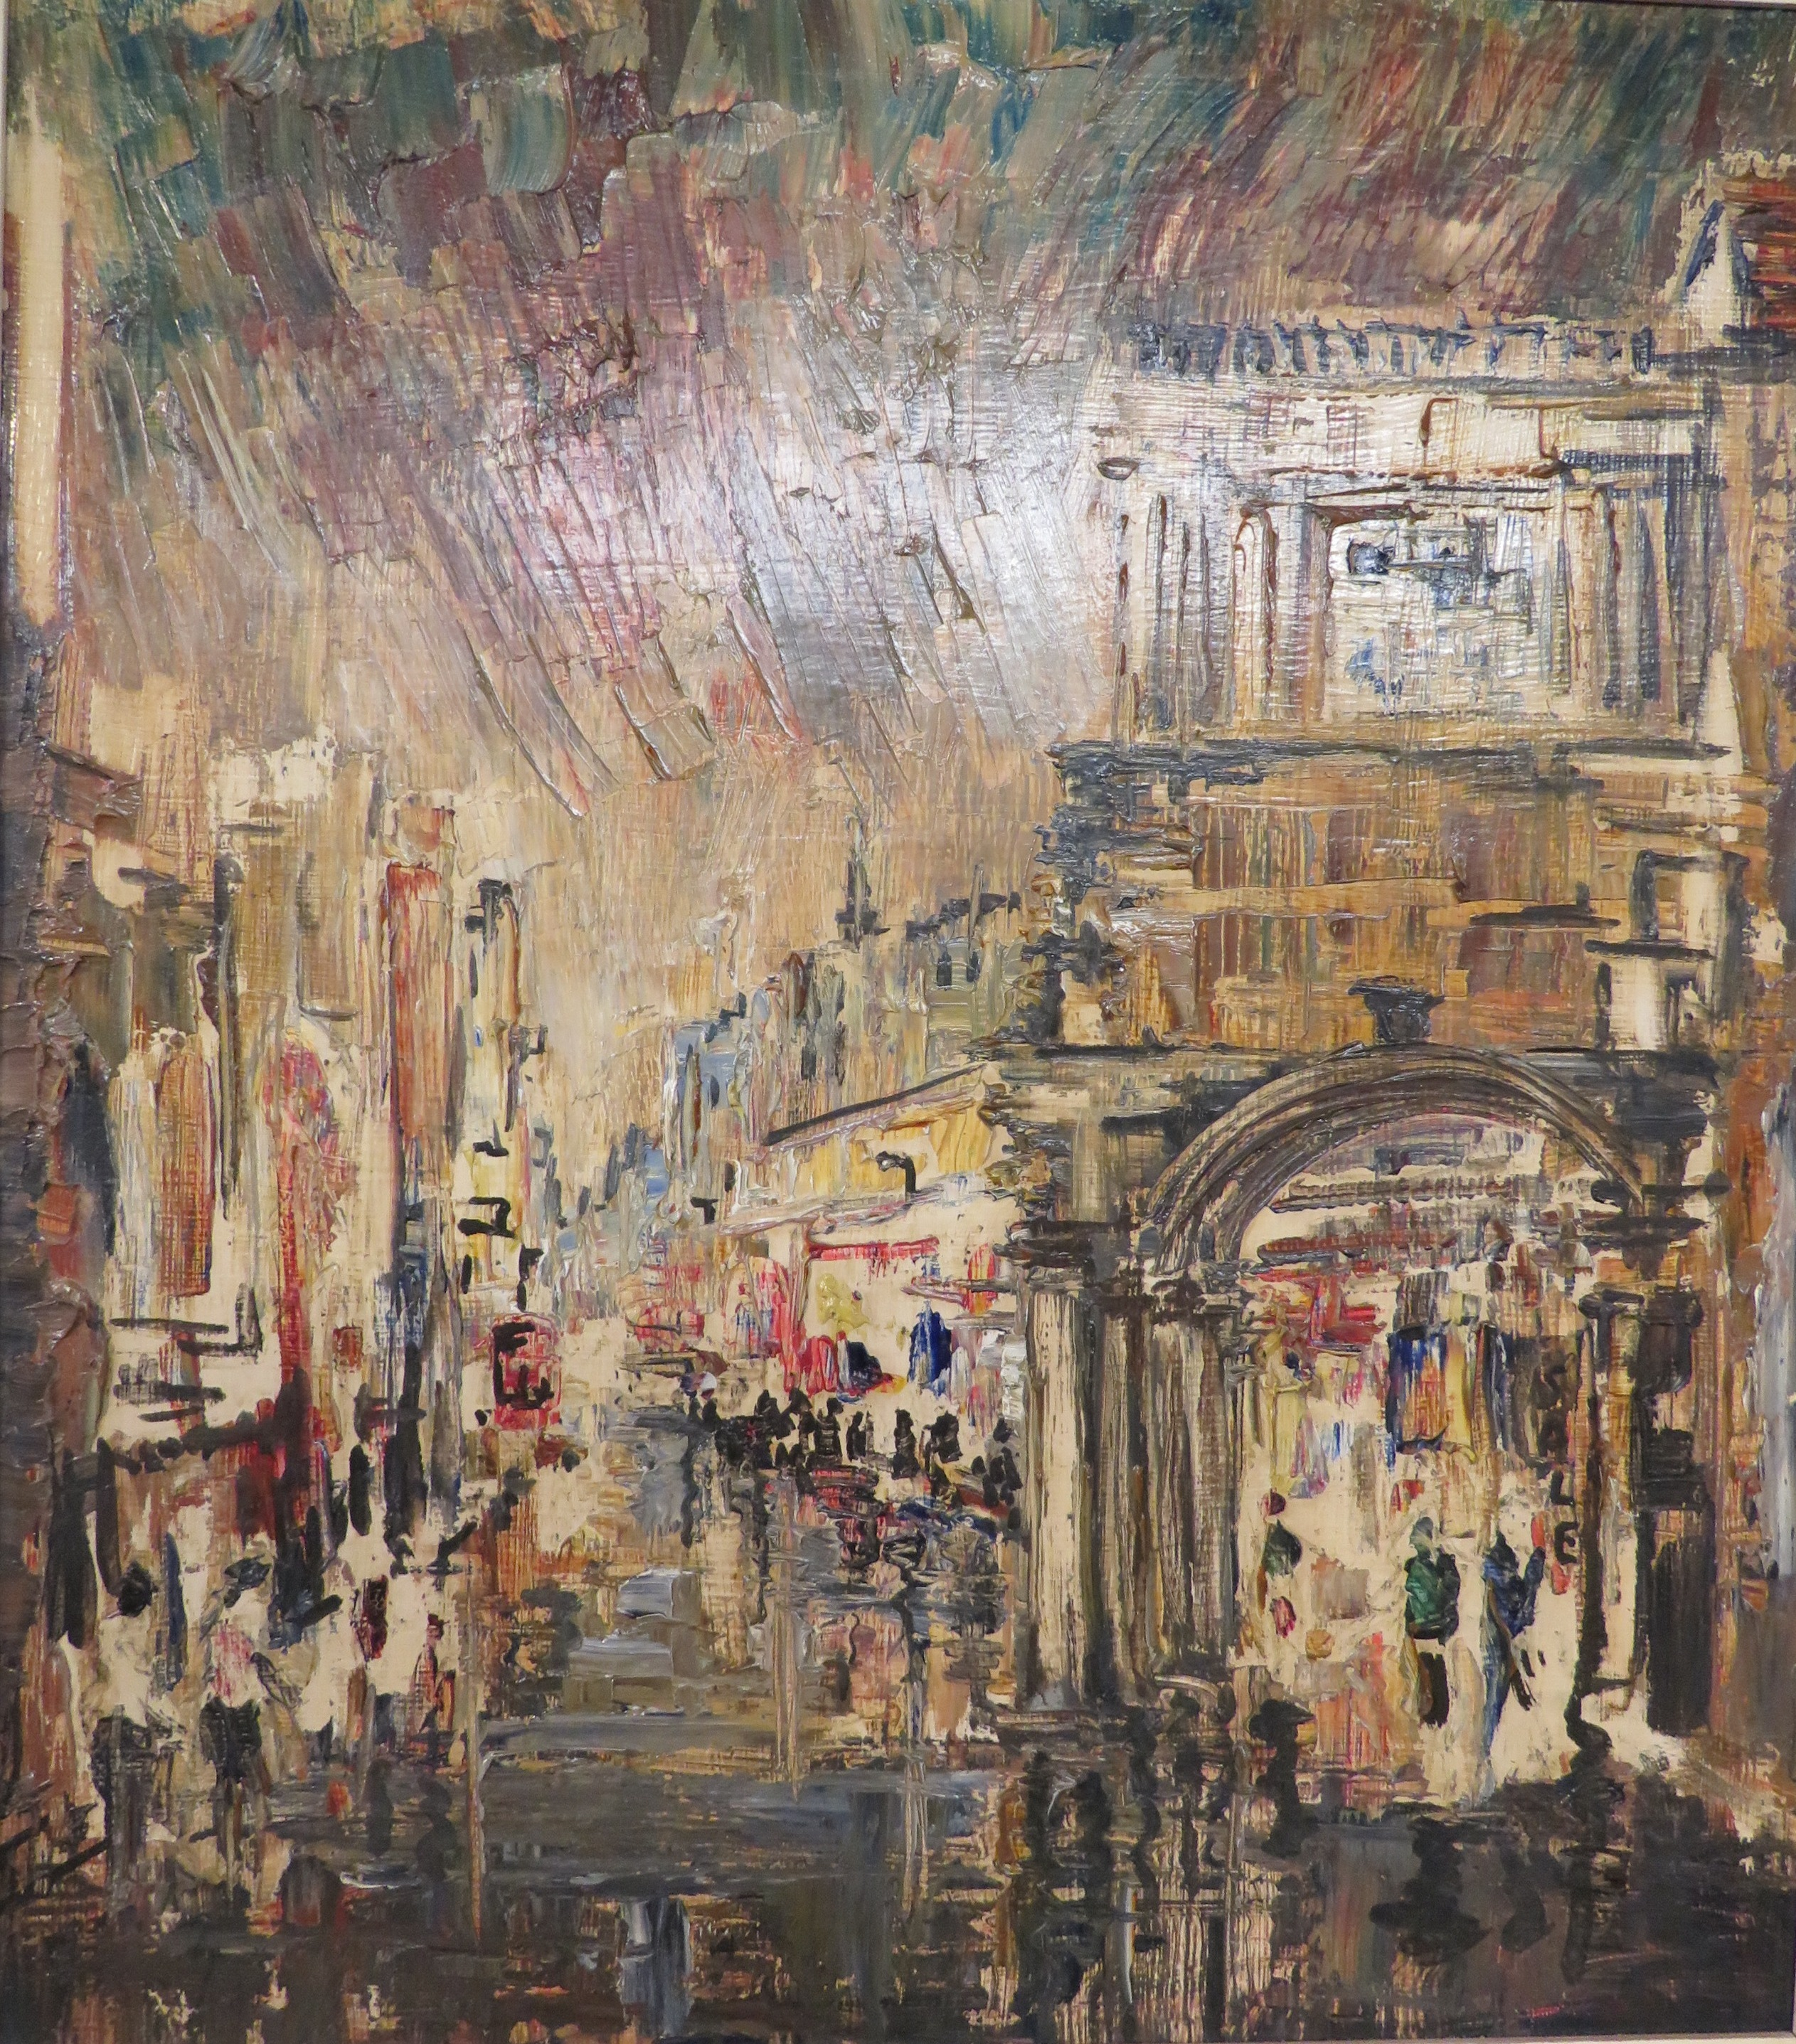 Lot 13 - Guildhall Exeter wet evening, oil on board, (44cm x 39cm), titled verso and Edwards Gallery of